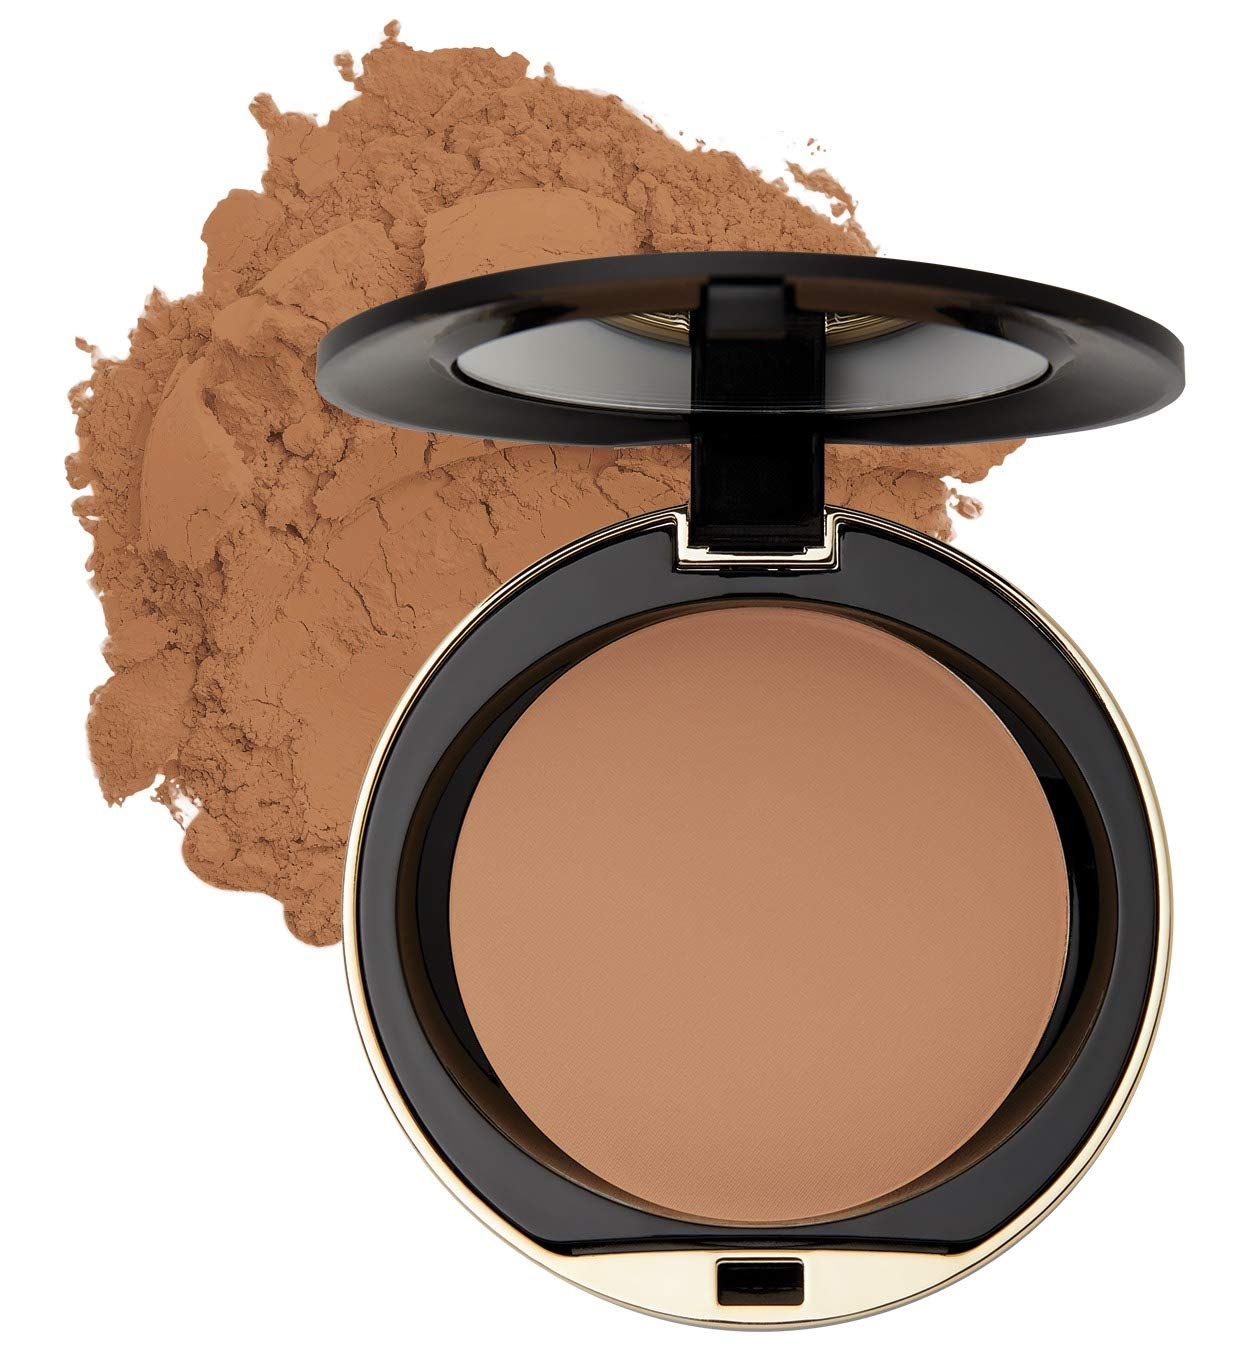 Milani Conceal + Perfect Shine-Proof Powder - (0.42 Ounce) Vegan, Cruelty-Free Oil-Absorbing Face Powder that Mattifies Skin and Tightens Pores (Deep)